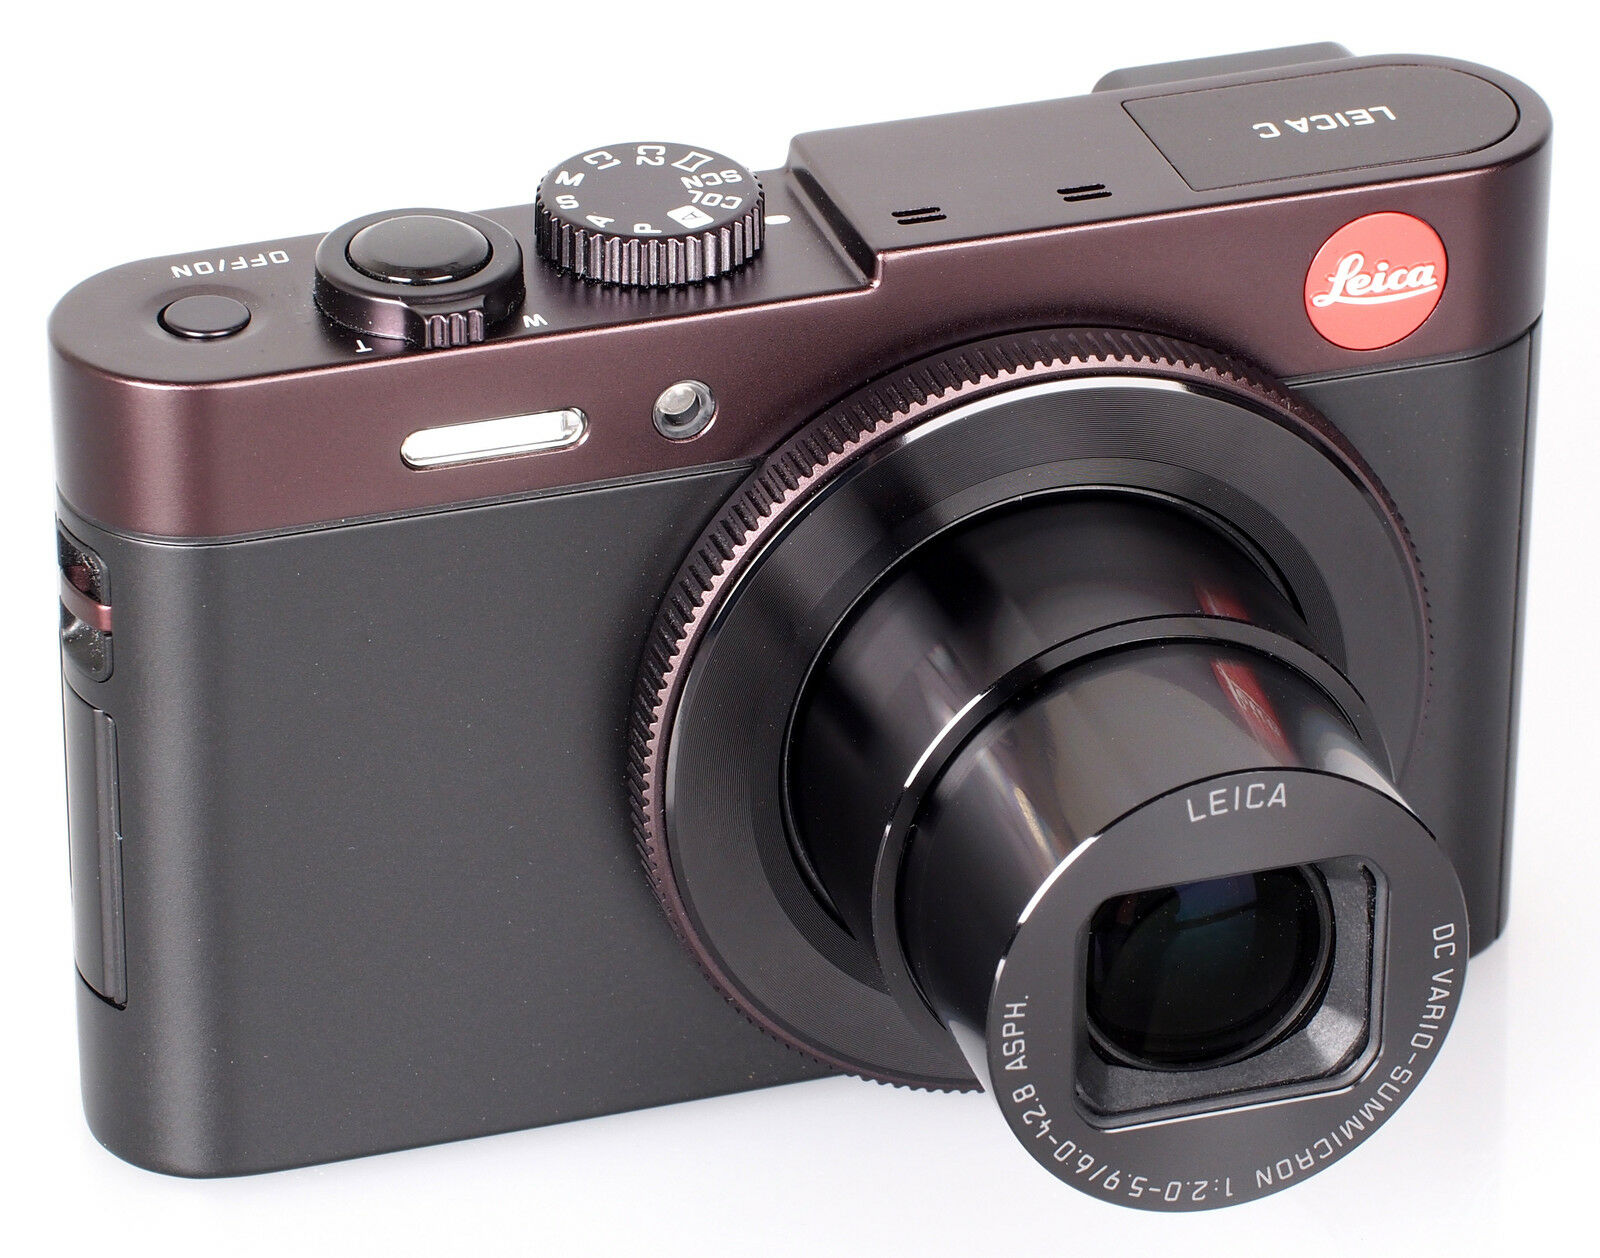 Leica C (Typ 112) from 6ave